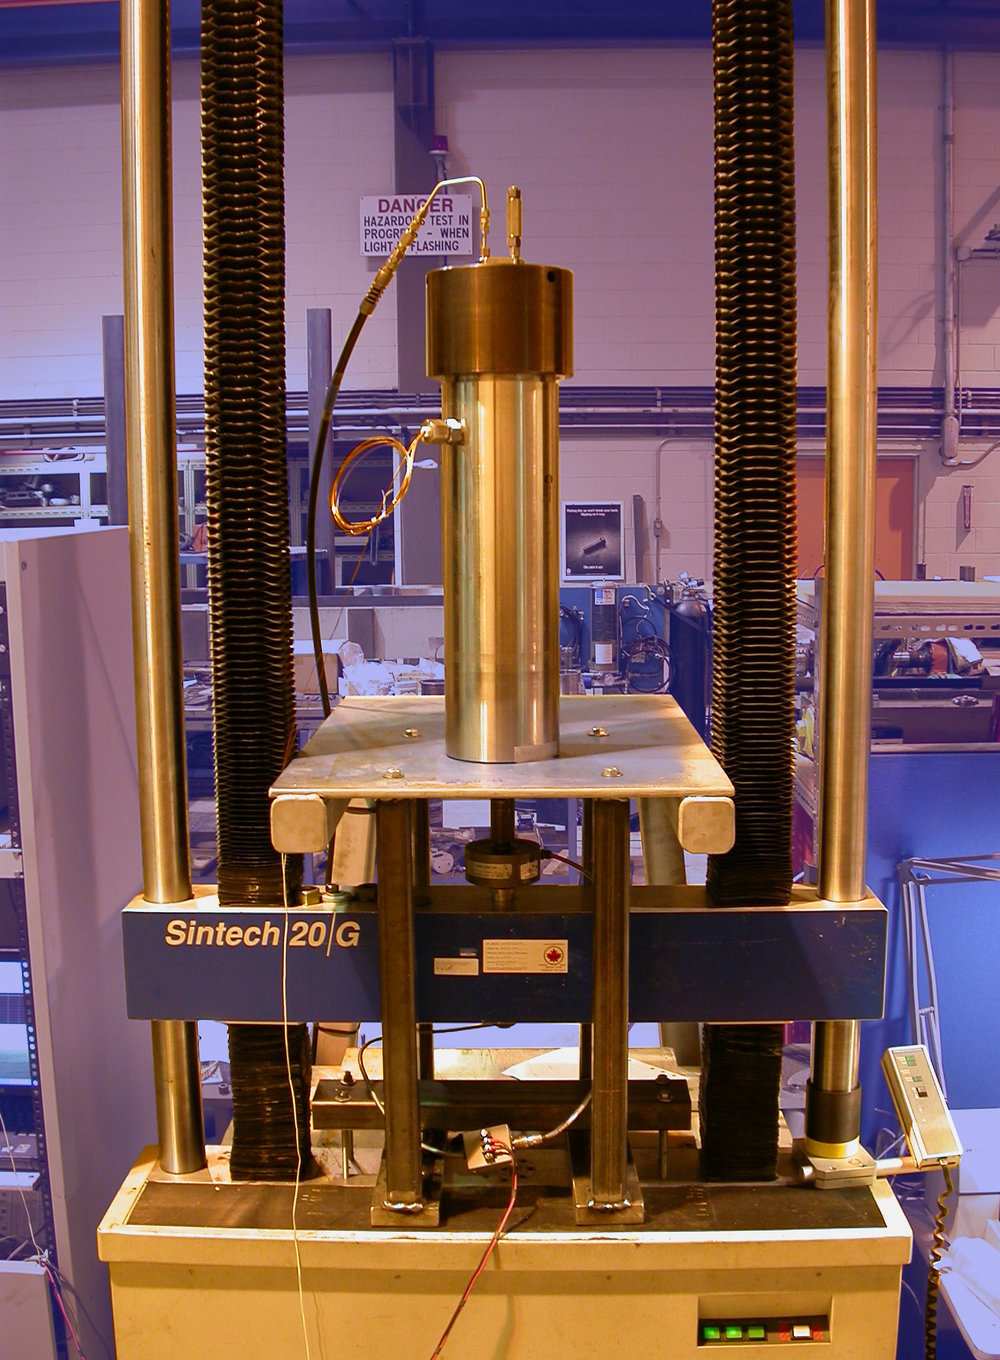 "<a href=""/services-all/hydrogen-embrittlement-testing"">HYDROGEN EMBRITTLEMENT TESTING</a>"